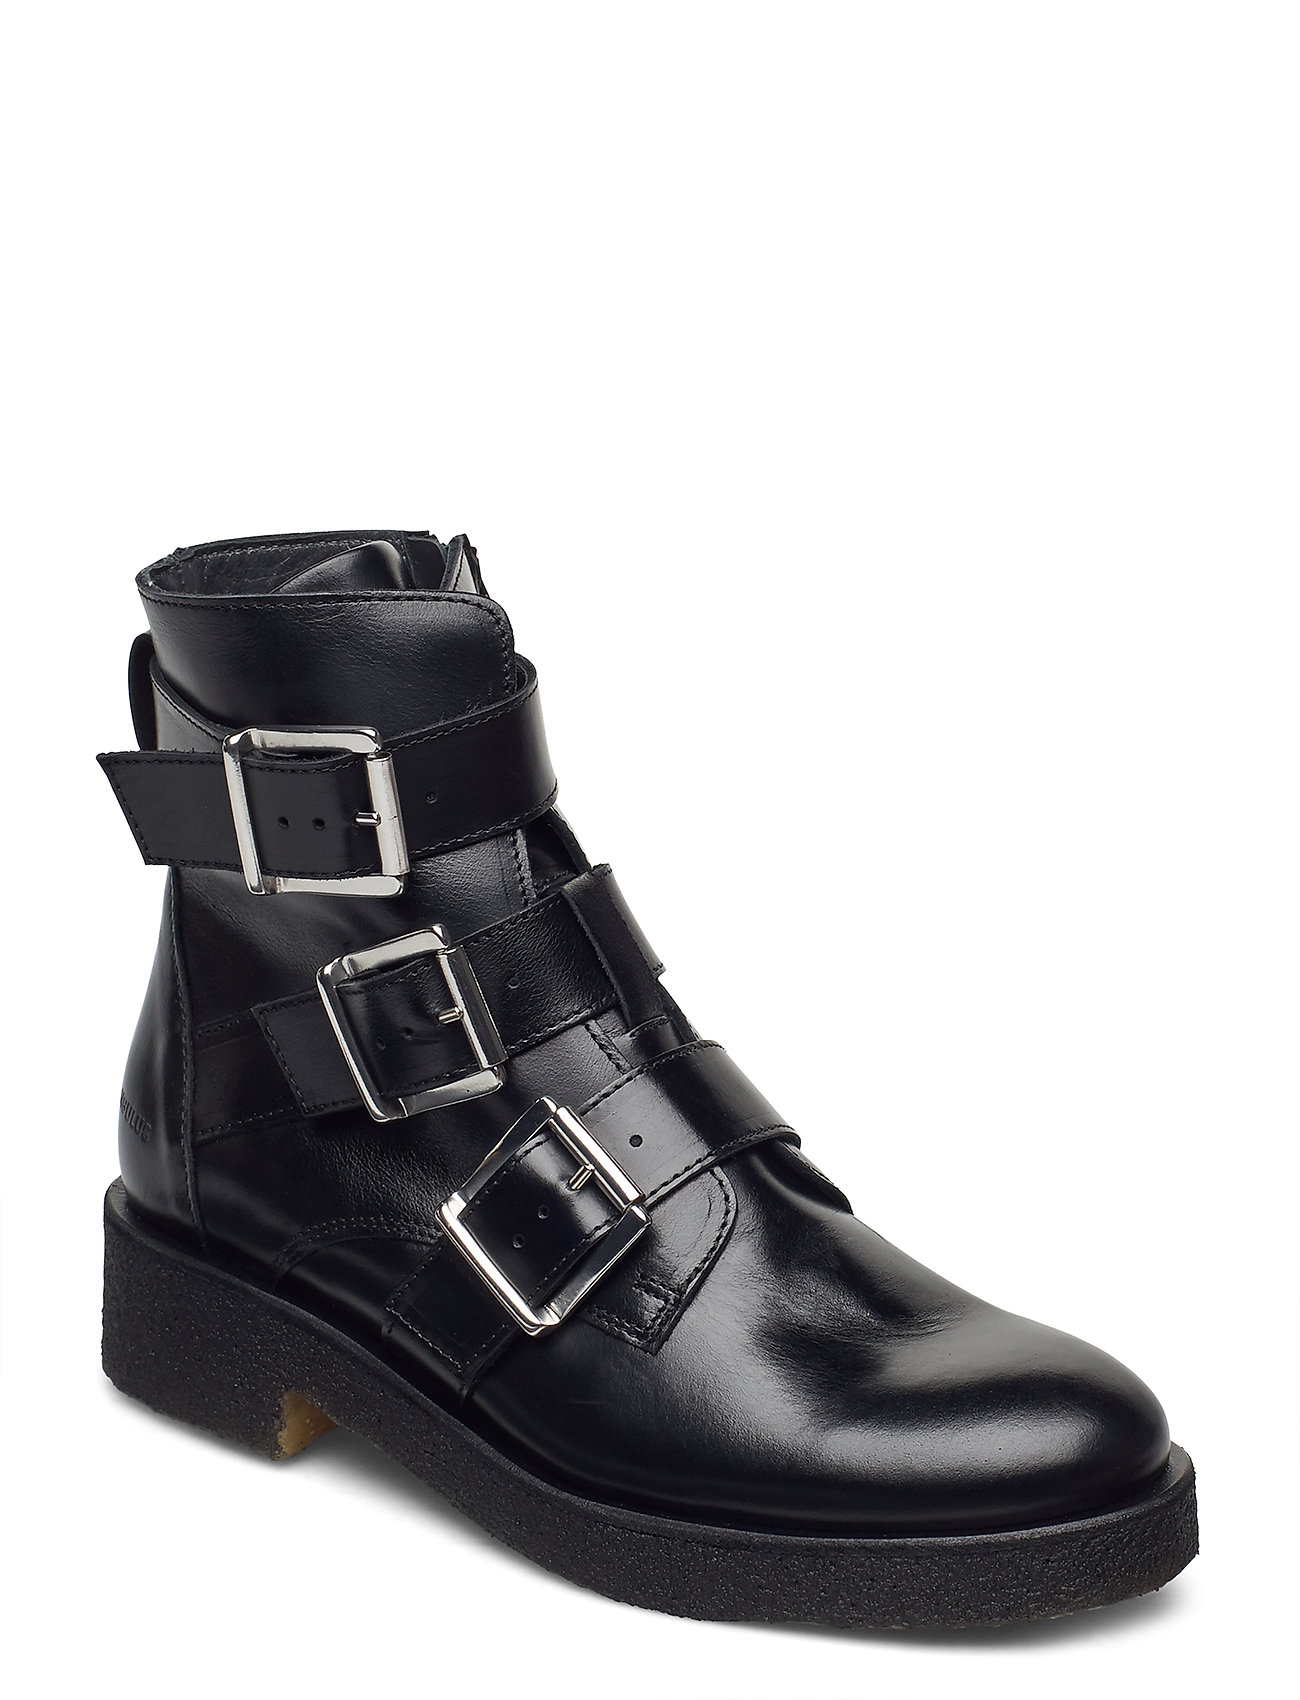 Image of Booties - Flat - With Zipper Shoes Boots Ankle Boots Ankle Boot - Flat Sort ANGULUS (3440209325)